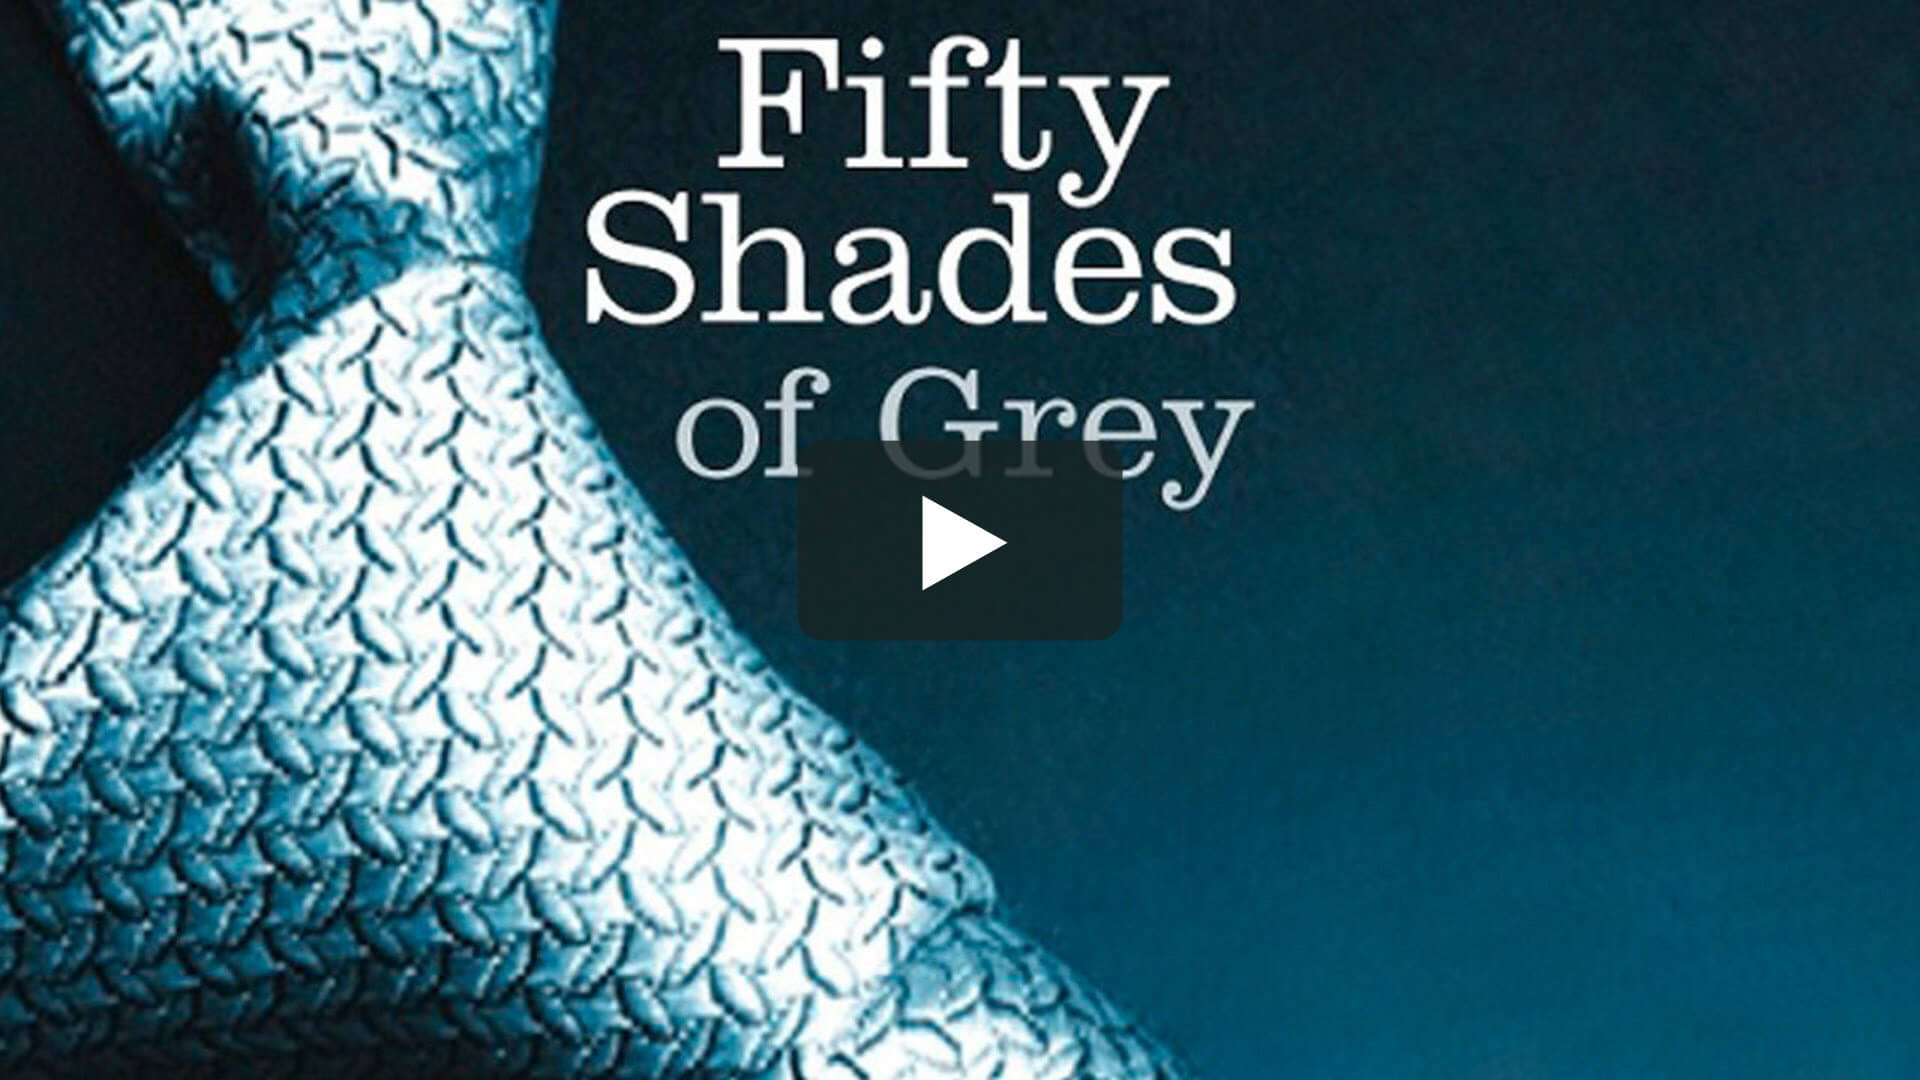 Fifty Shades Of Grey - 五十度灰1